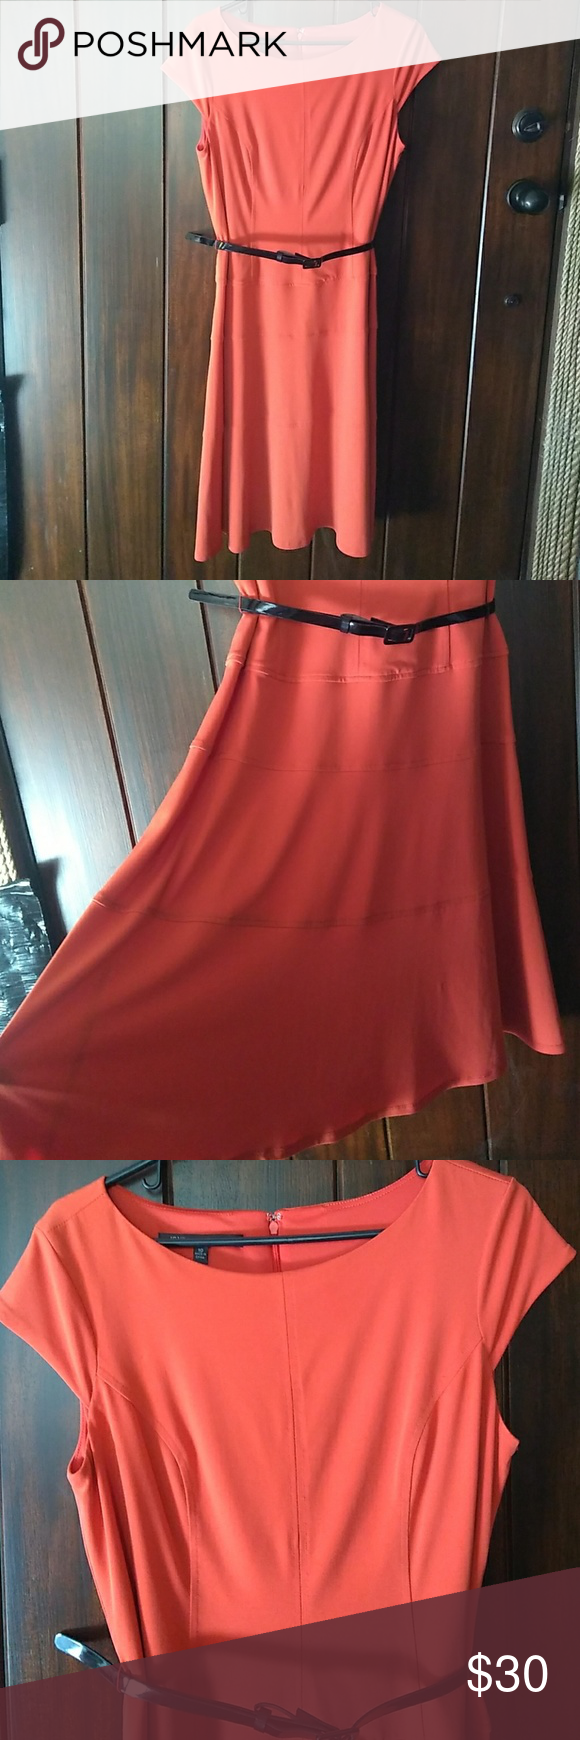 """Jones Wear Dress Orange A-Line Dress Jones Wear Dress Orange A-Line Dress, size 10. Tiered skirt. Back zip. Comes with black belt. Top part lined. Mostly polyester with some spandex for fit and comfort. Pit to pit is 18.5"""" and length from shoulder to bottom hem is 41.5"""". VGUC, no flaws. Perfect for spring! Jones Wear Dress Dresses"""